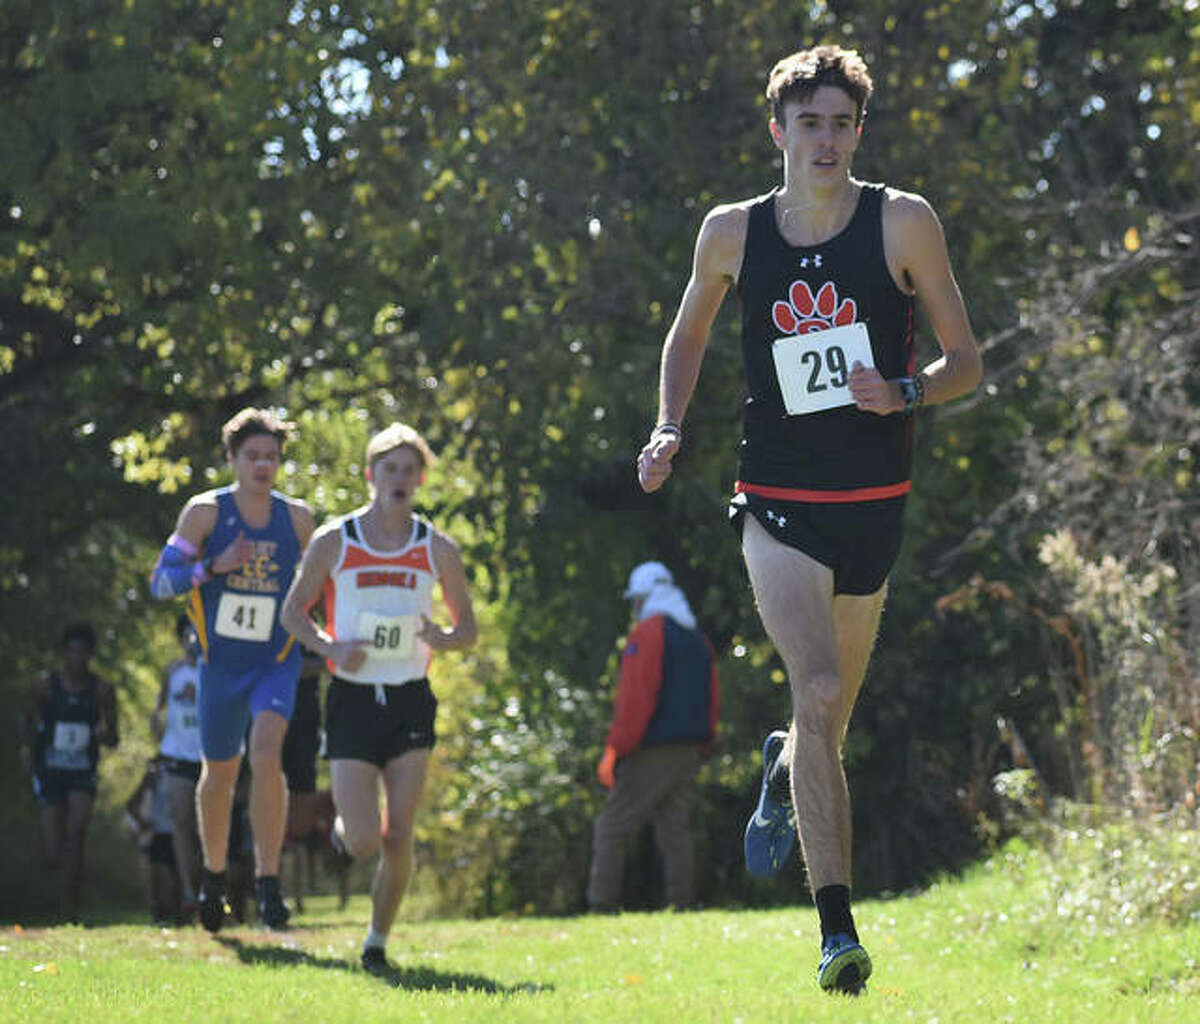 Edwardsville's Ryan Watts jogs ahead of a group of runners during the Class 3A Normal Community Sectional.